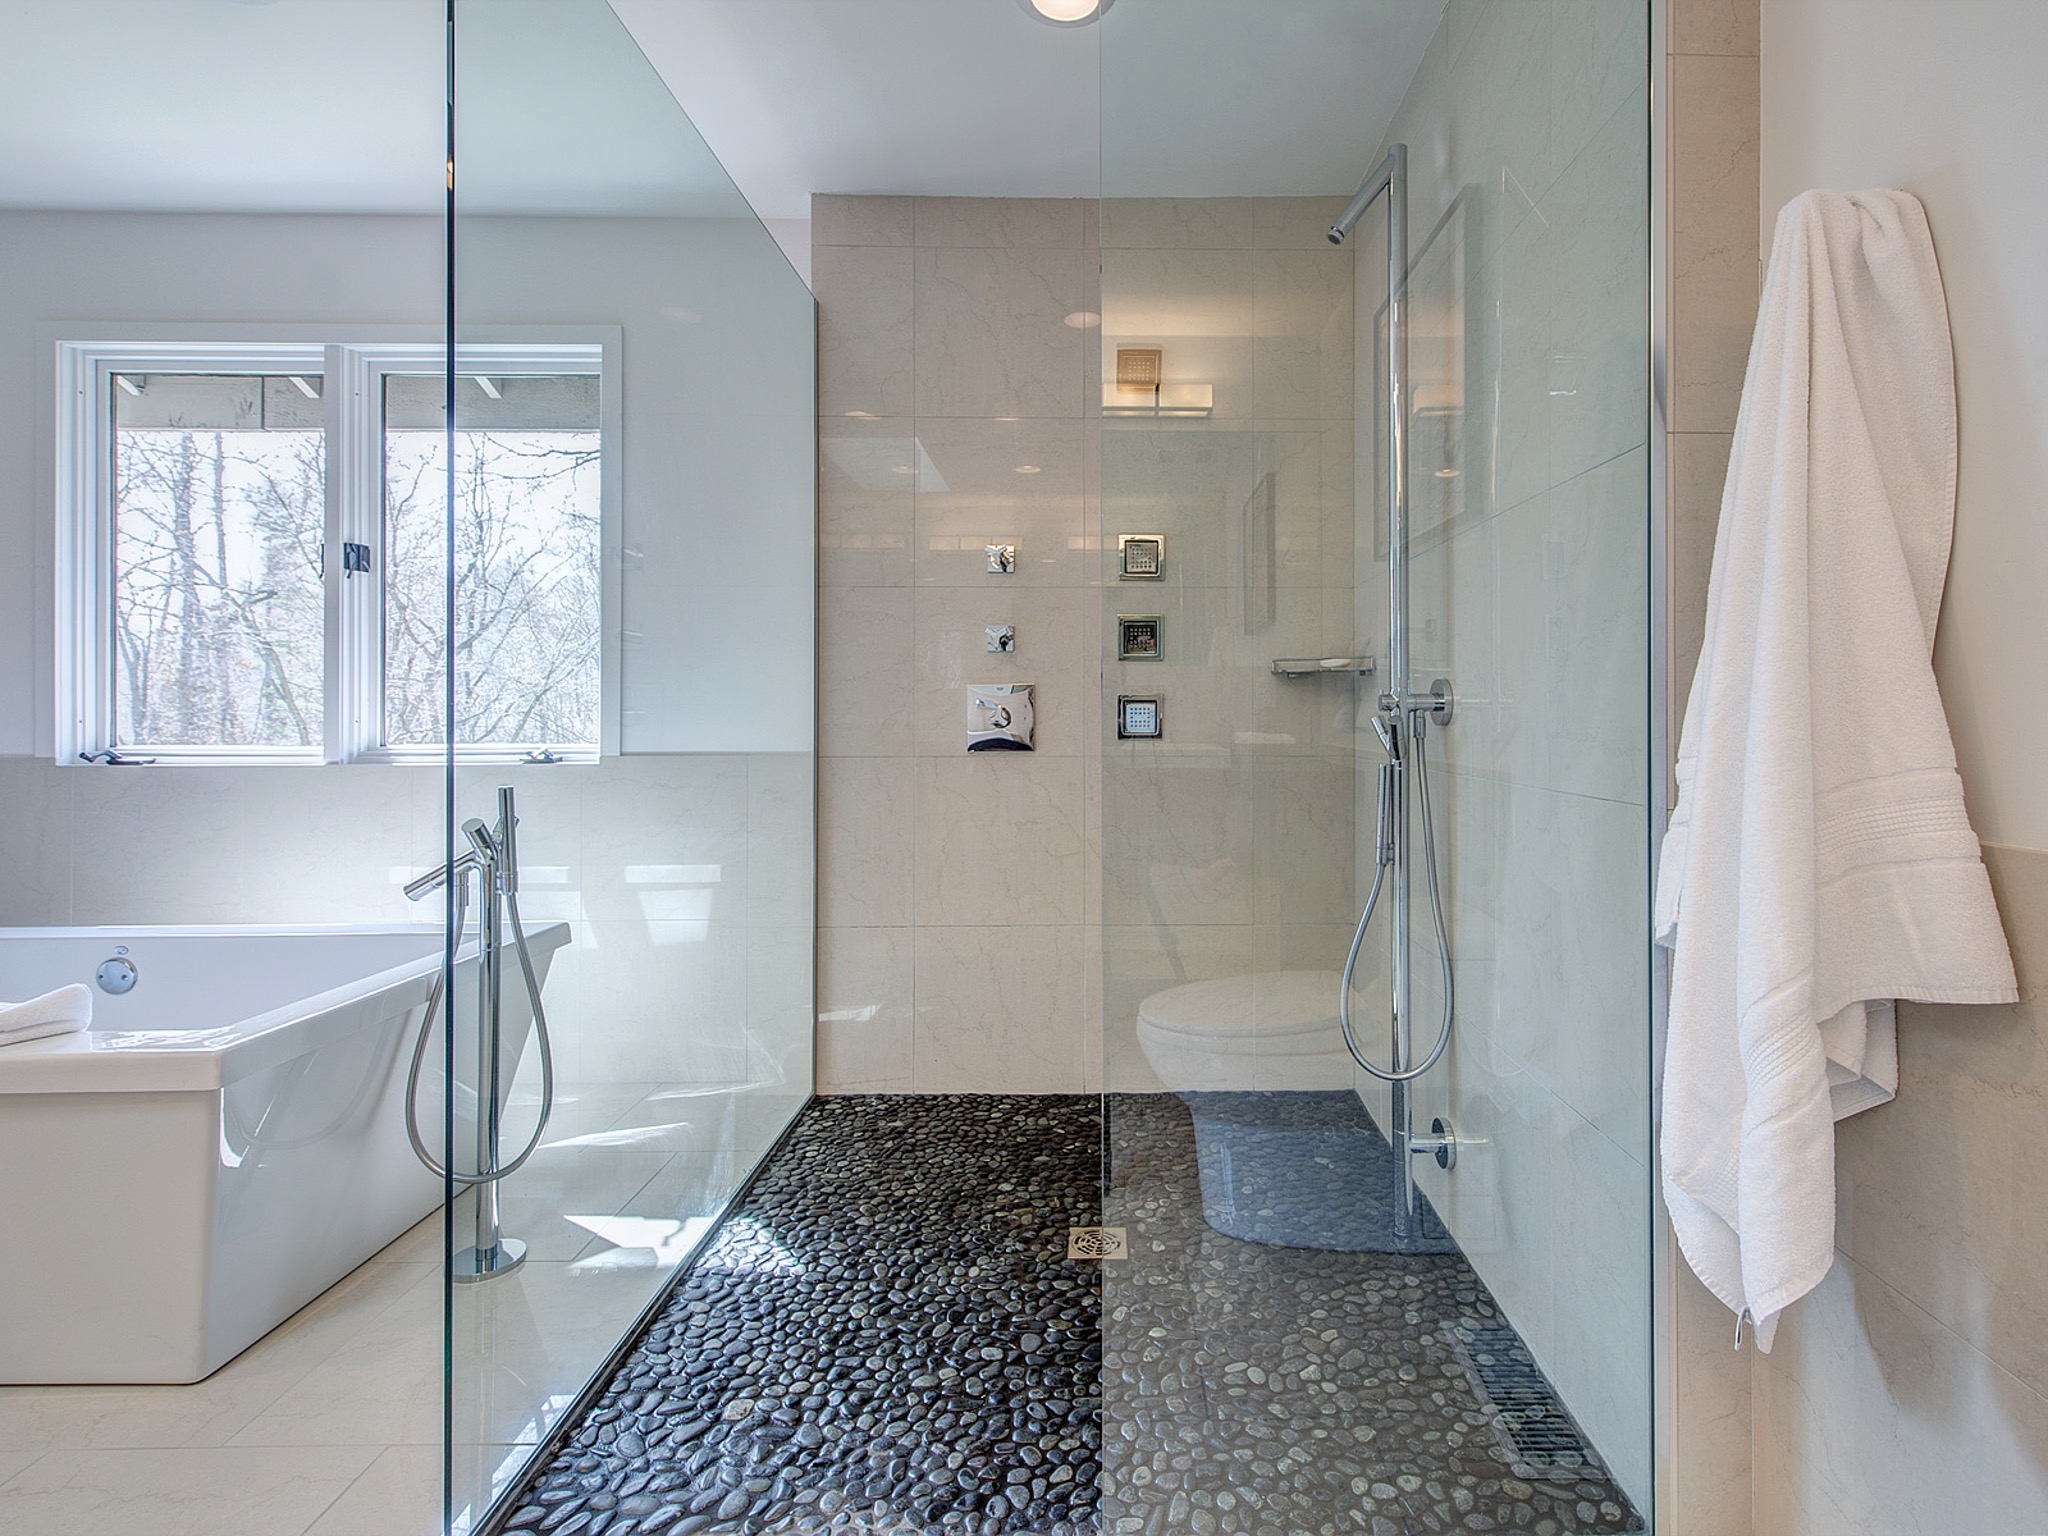 Contemporary White Shower With Black Pebble Floor (Image 10 of 17)